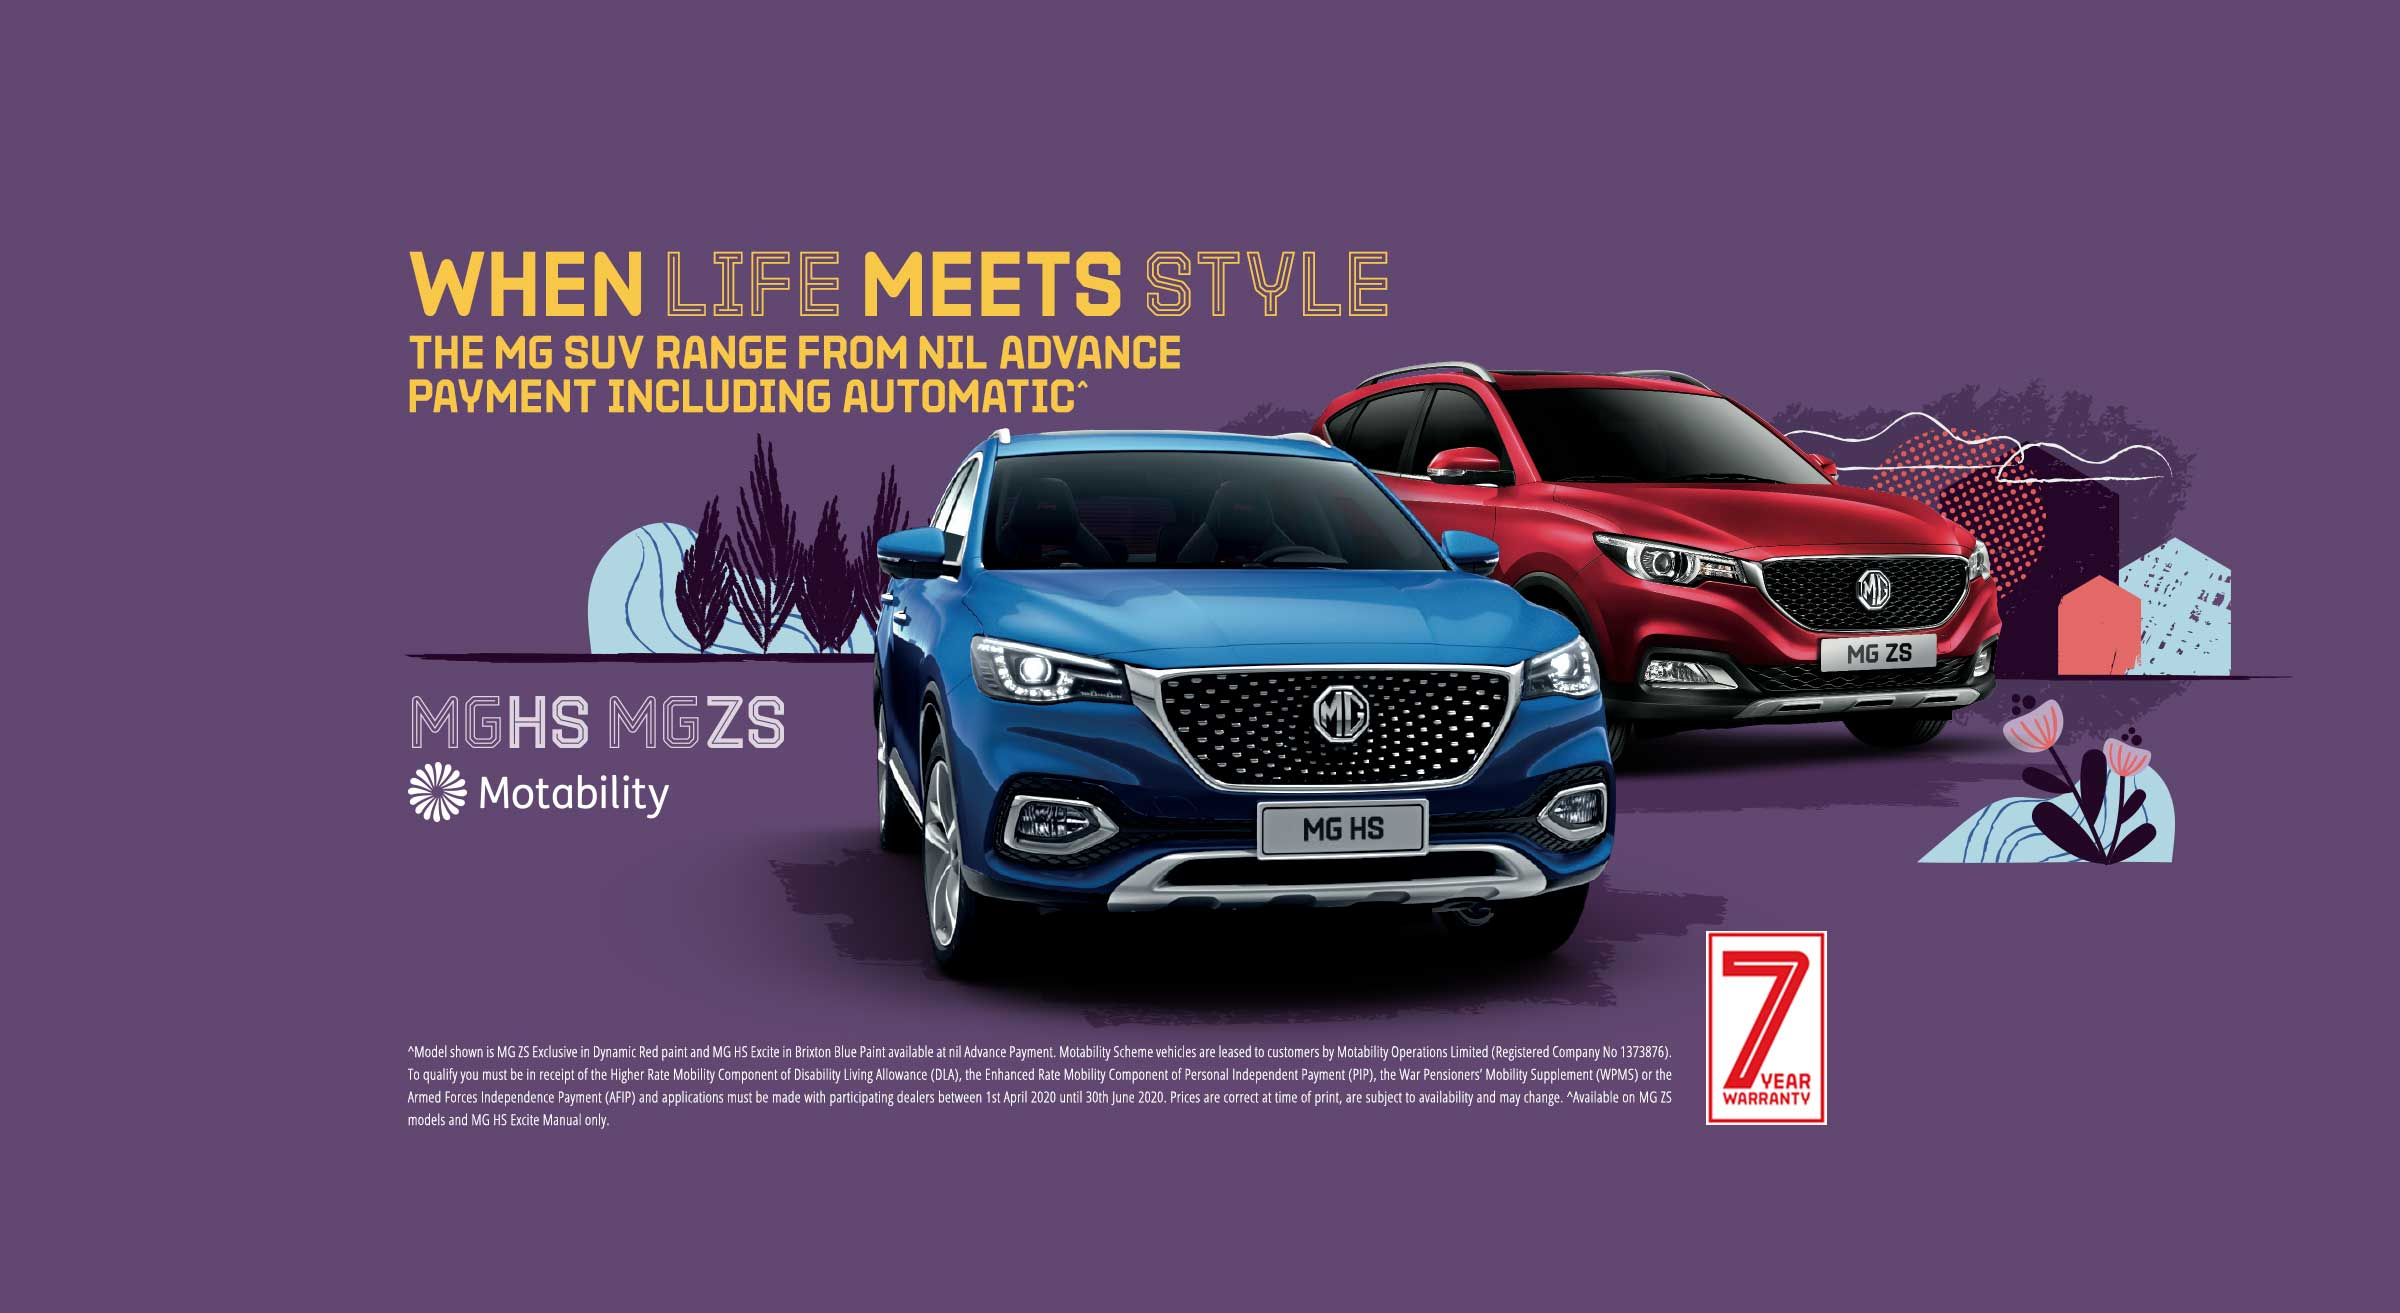 MG Motability offers